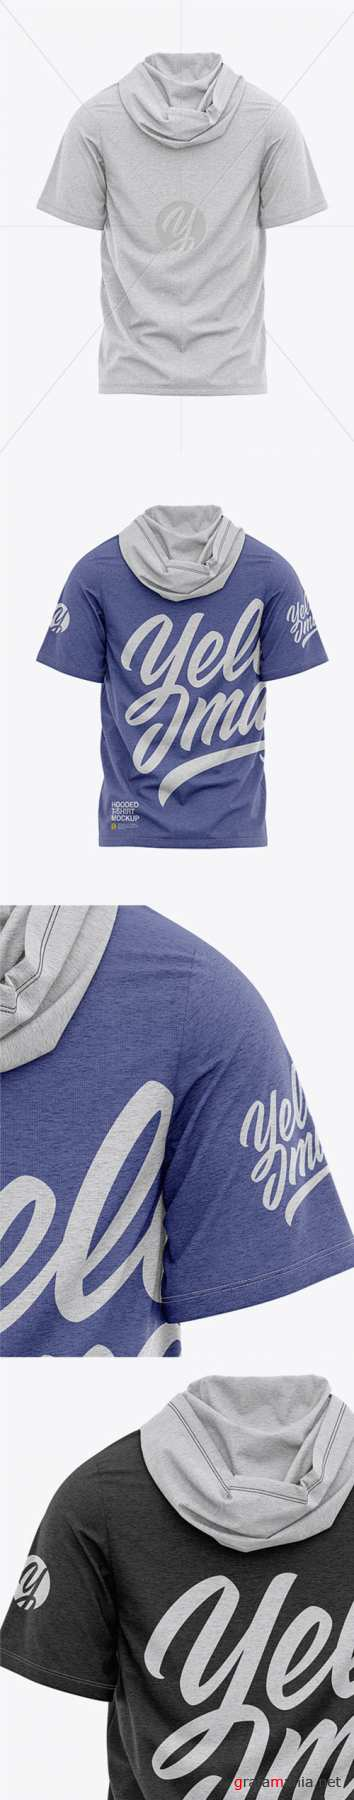 Mens Heather Hooded T-shirt Mockup - Back View 36977 TIF